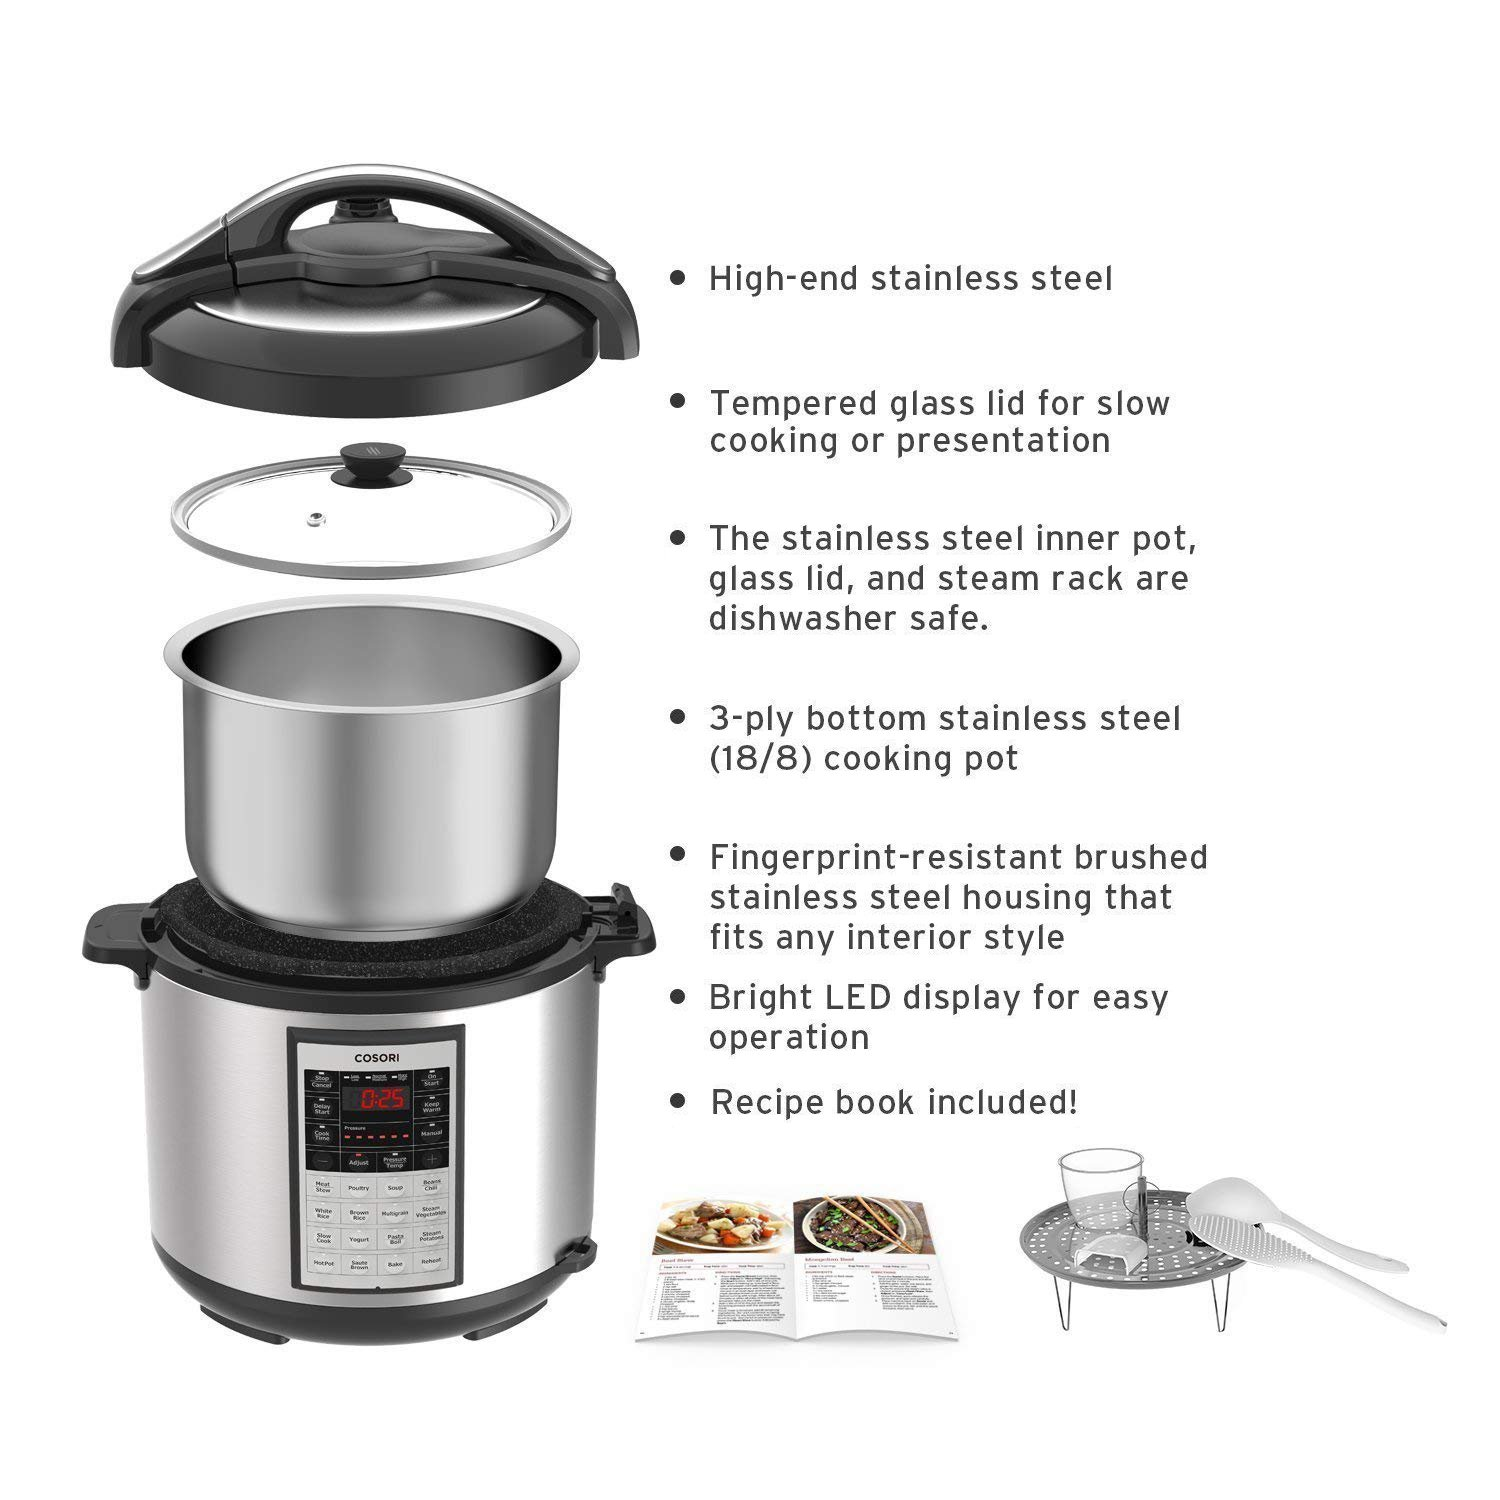 COSORI 8 Quart 8-in-1 Multi-Functional Programmable Pressure Cooker, Slow Cooker, Rice Cooker, Steamer, Sauté, Yogurt Maker, Hot Pot and Warmer, Full Accessories Included, Stainless Steel by COSORI (Image #7)